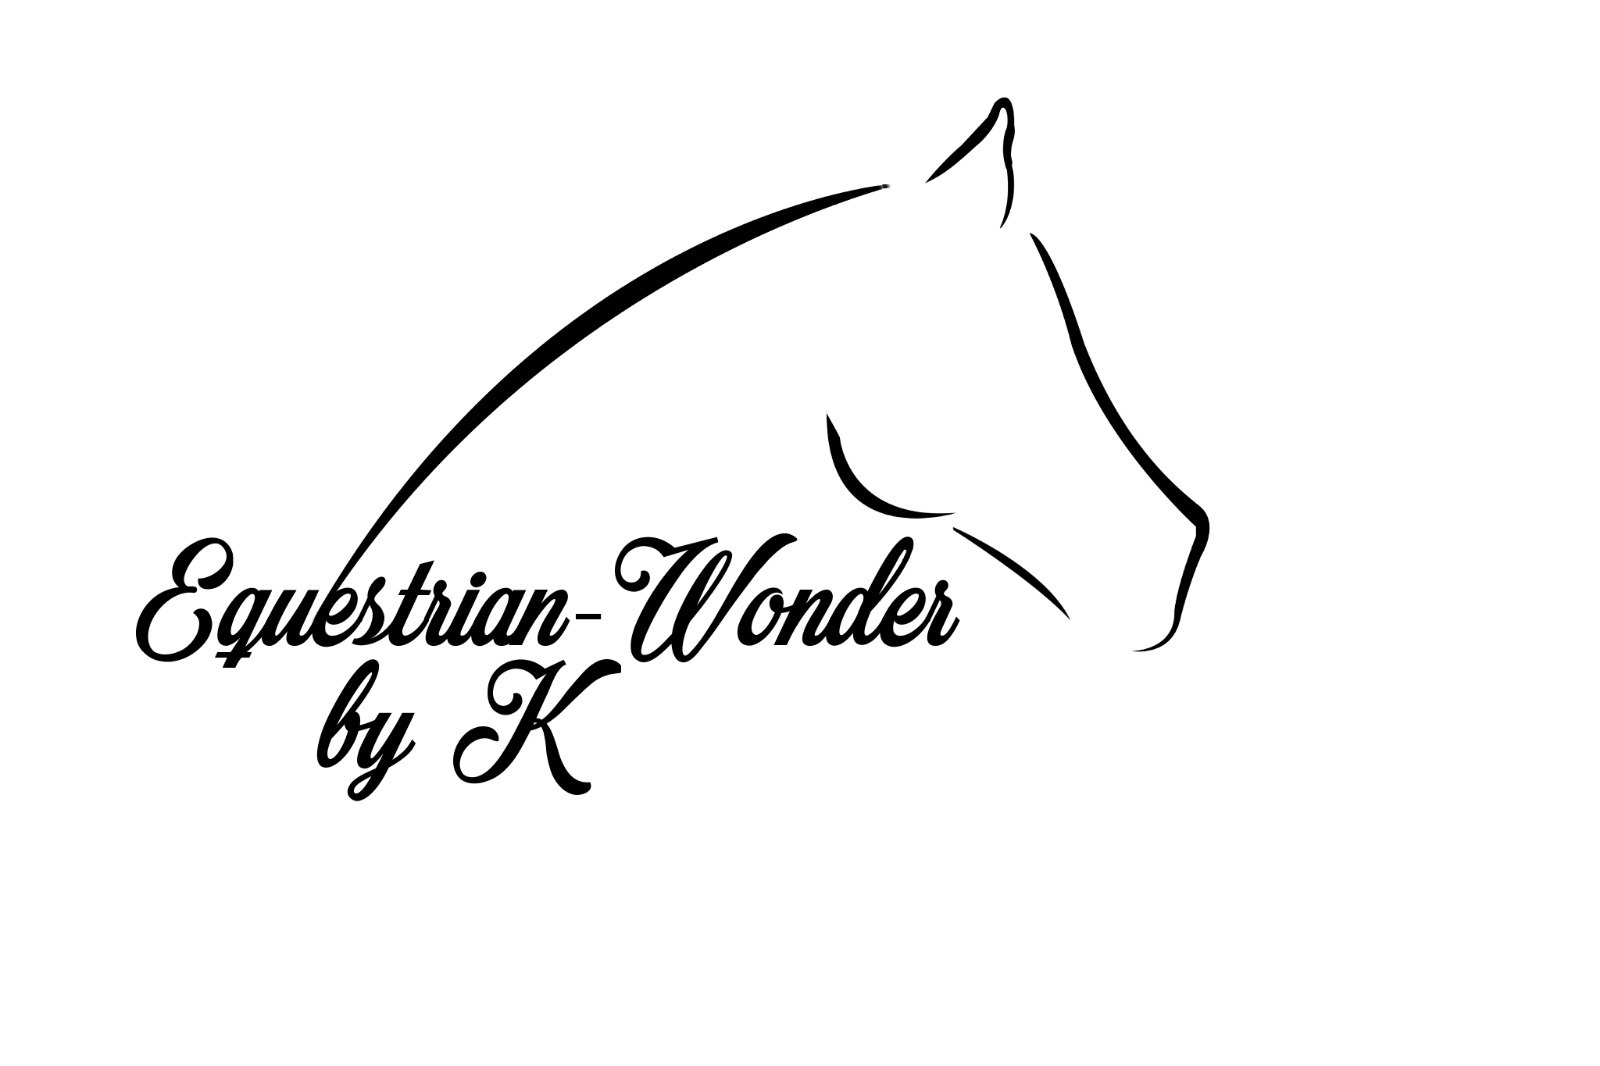 Equestrian-Wonder by K